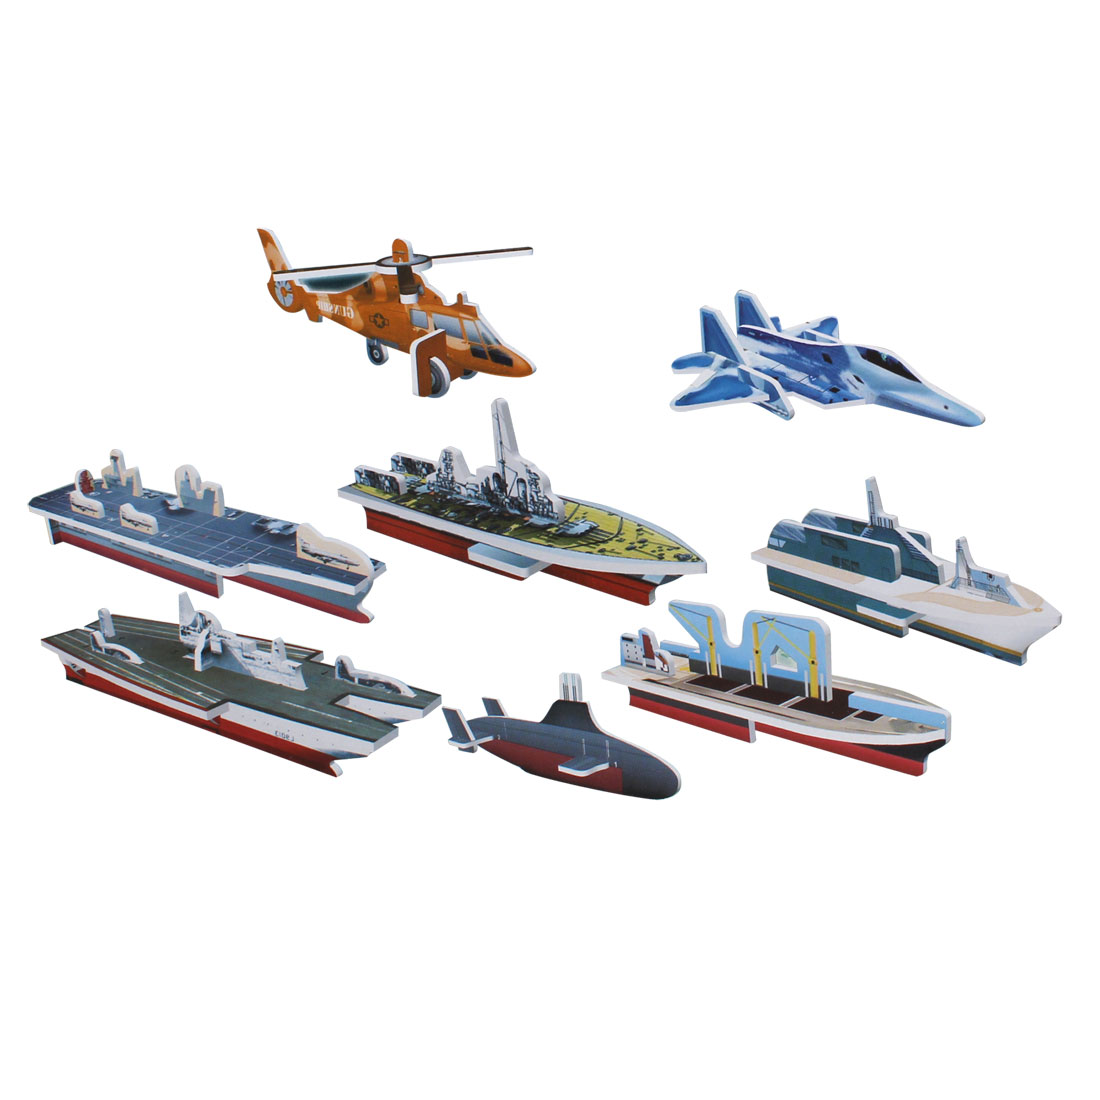 Multicolor 3D Foam Mini Military Style Assemble Toy Gift for Kids